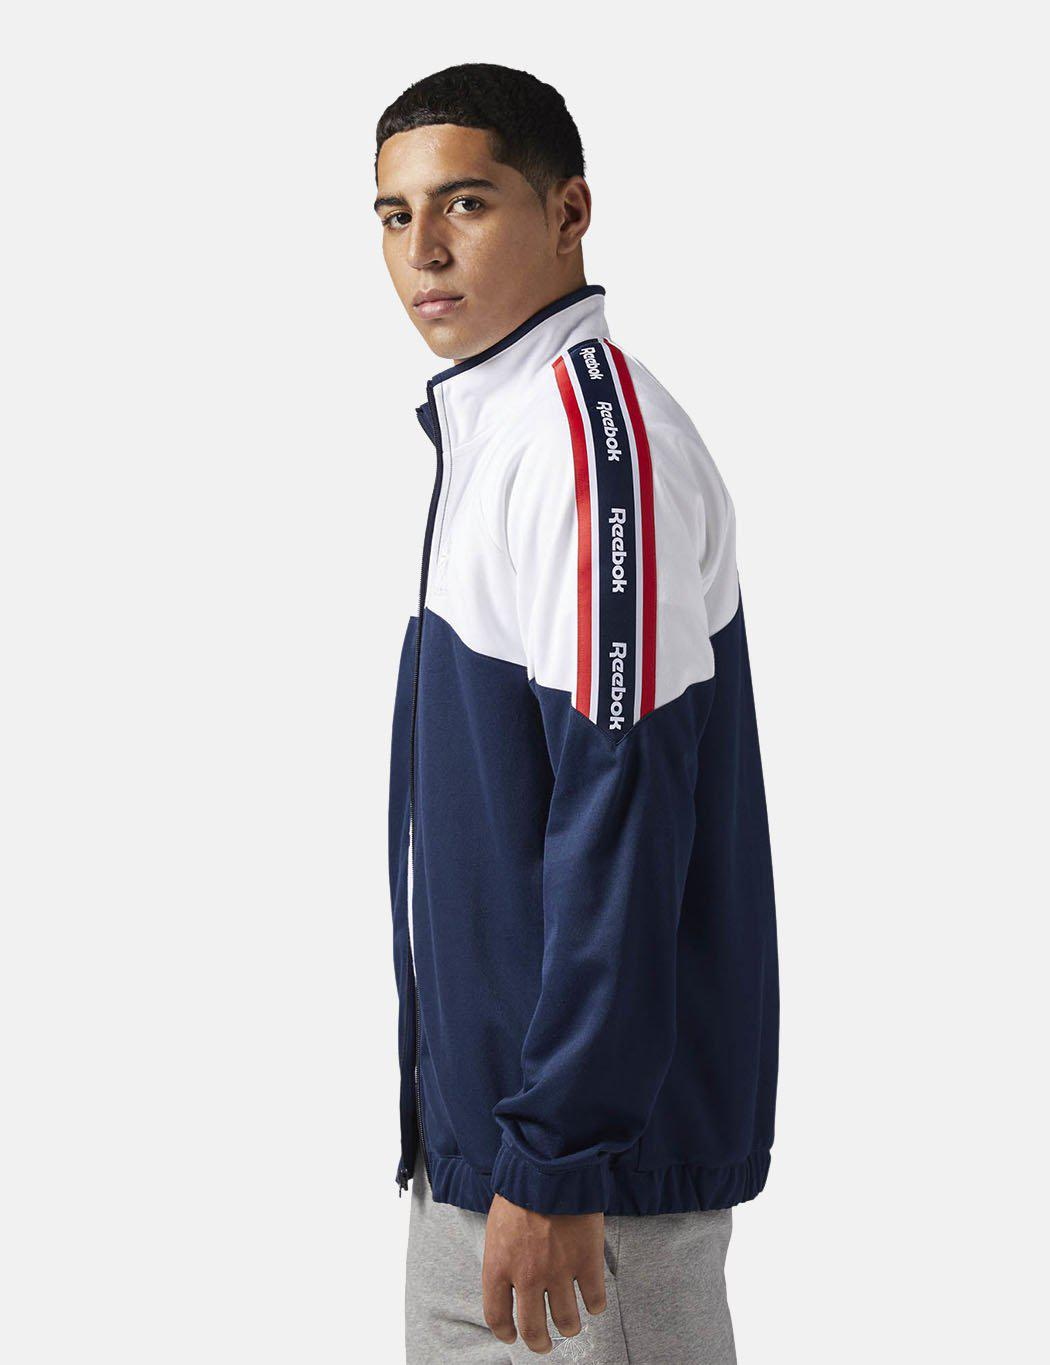 Lyst - Reebok Classics Franchise Track Top in Blue for Men 2167129dc